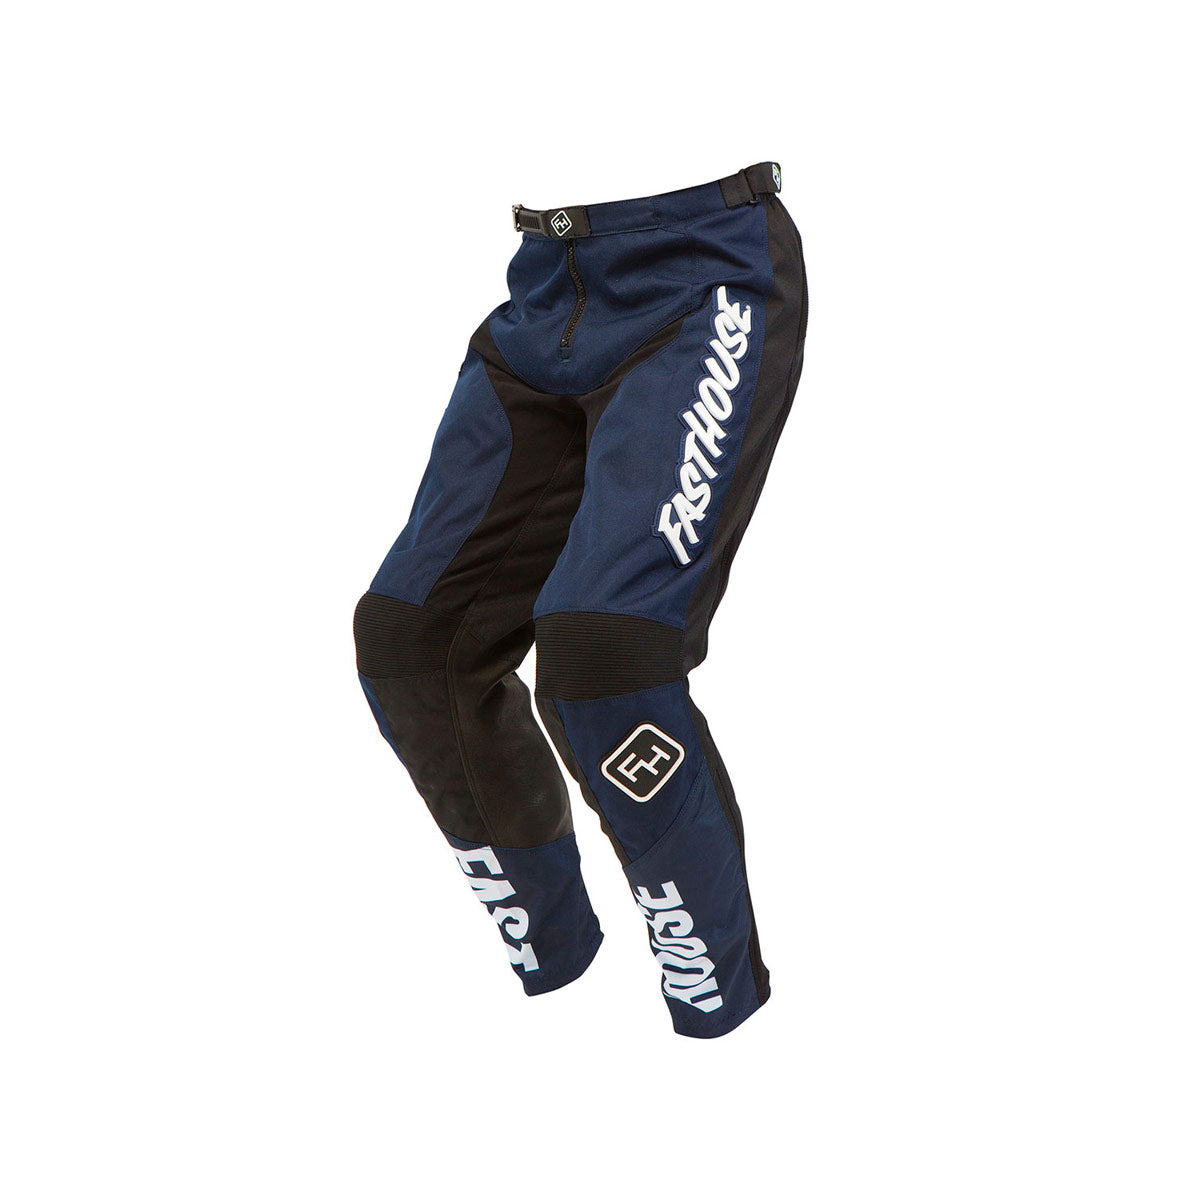 Fasthouse Grindhouse Youth Pant Navy